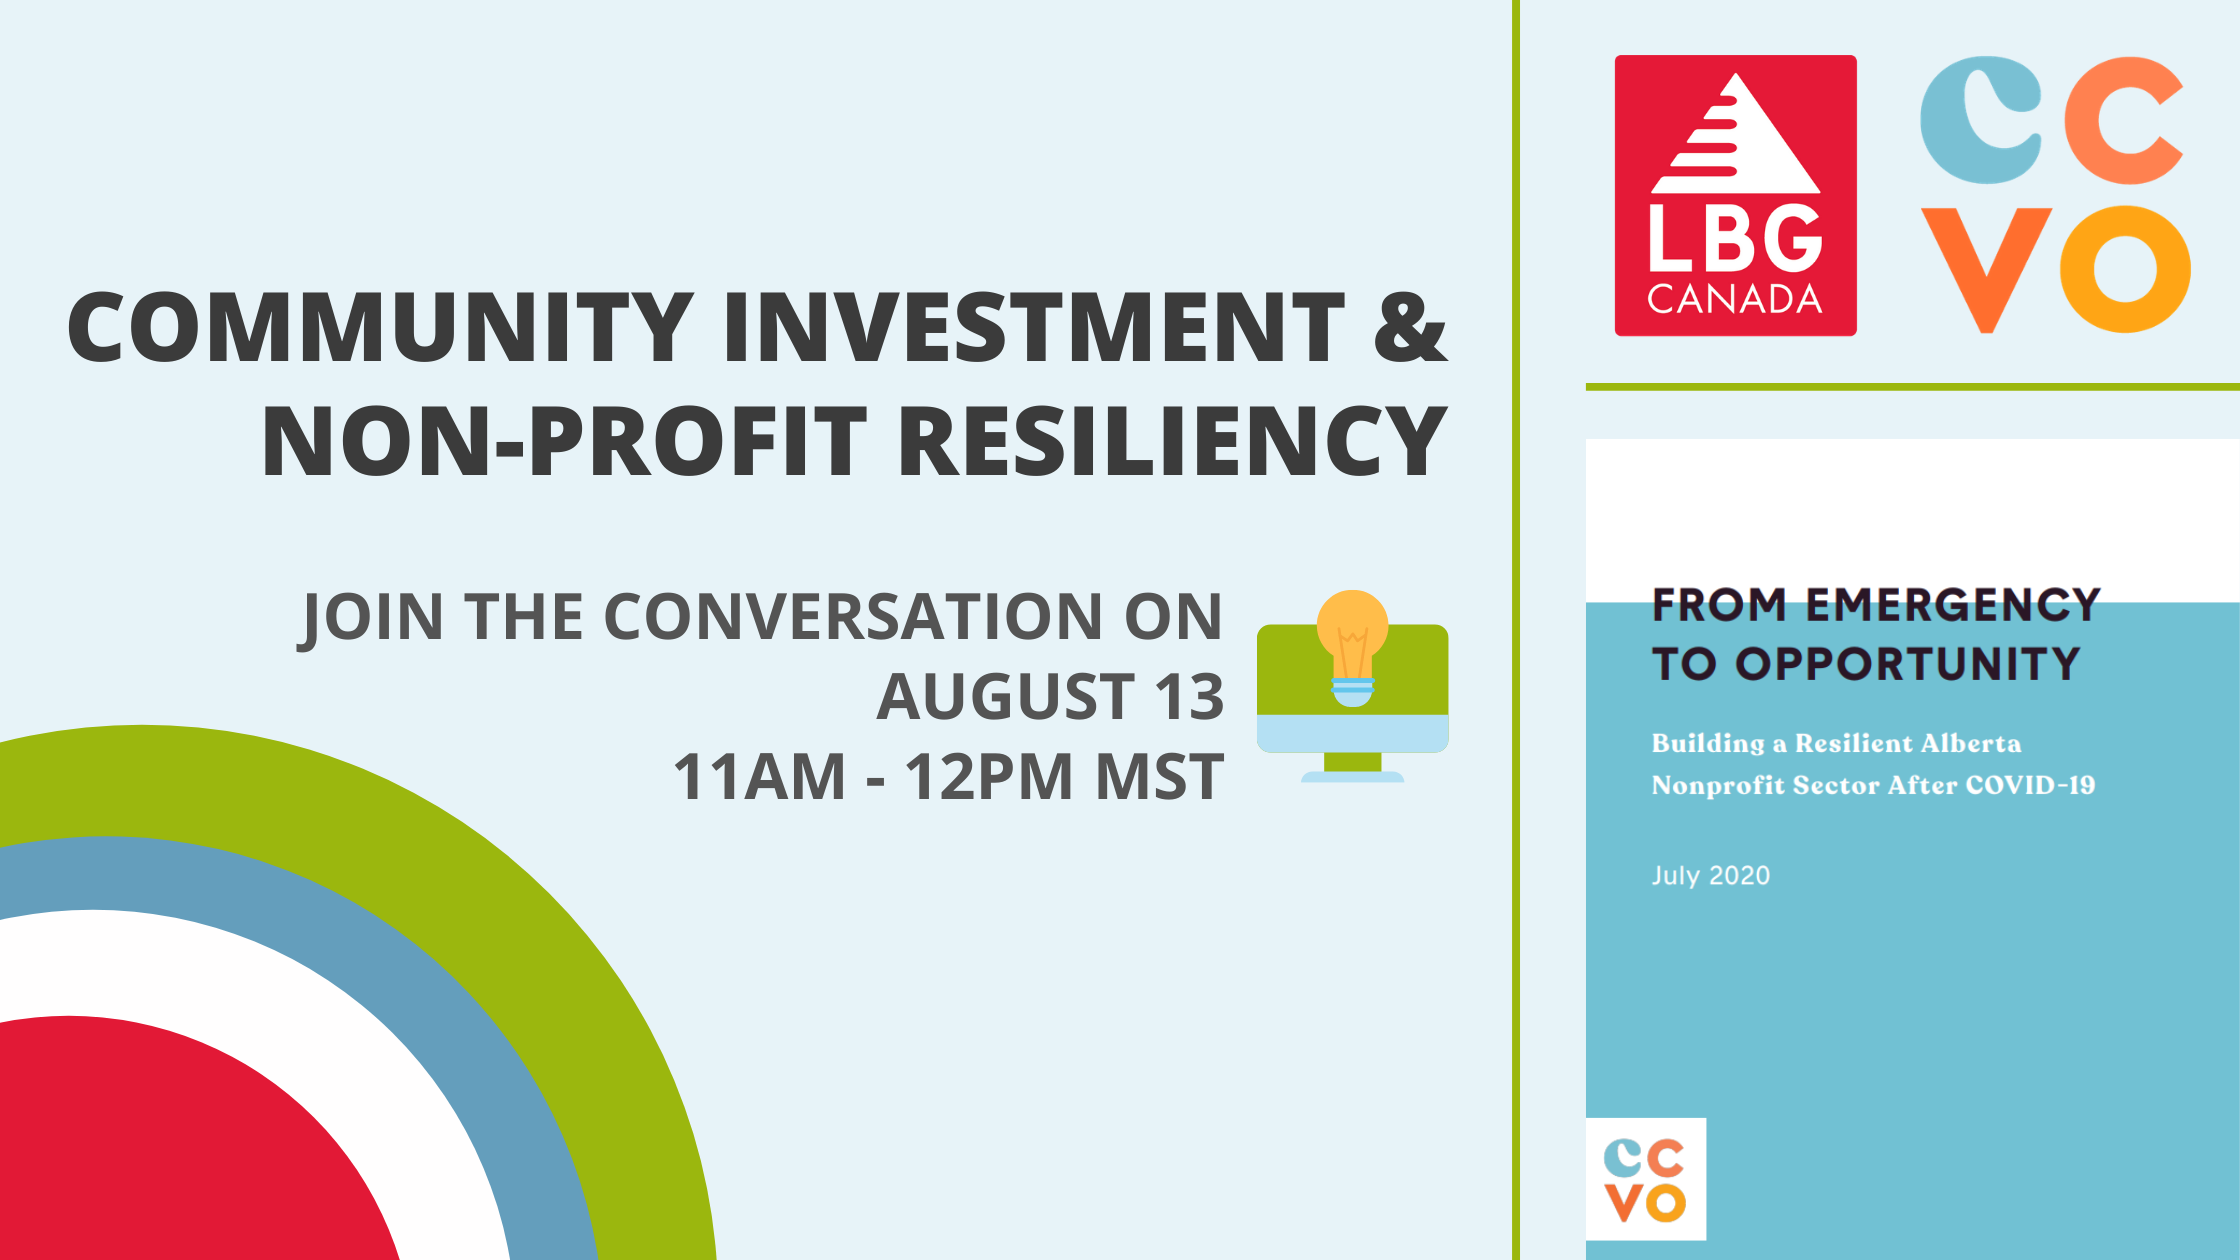 LBG Canada And CCVO Coming Together For Conversation On Community Investment